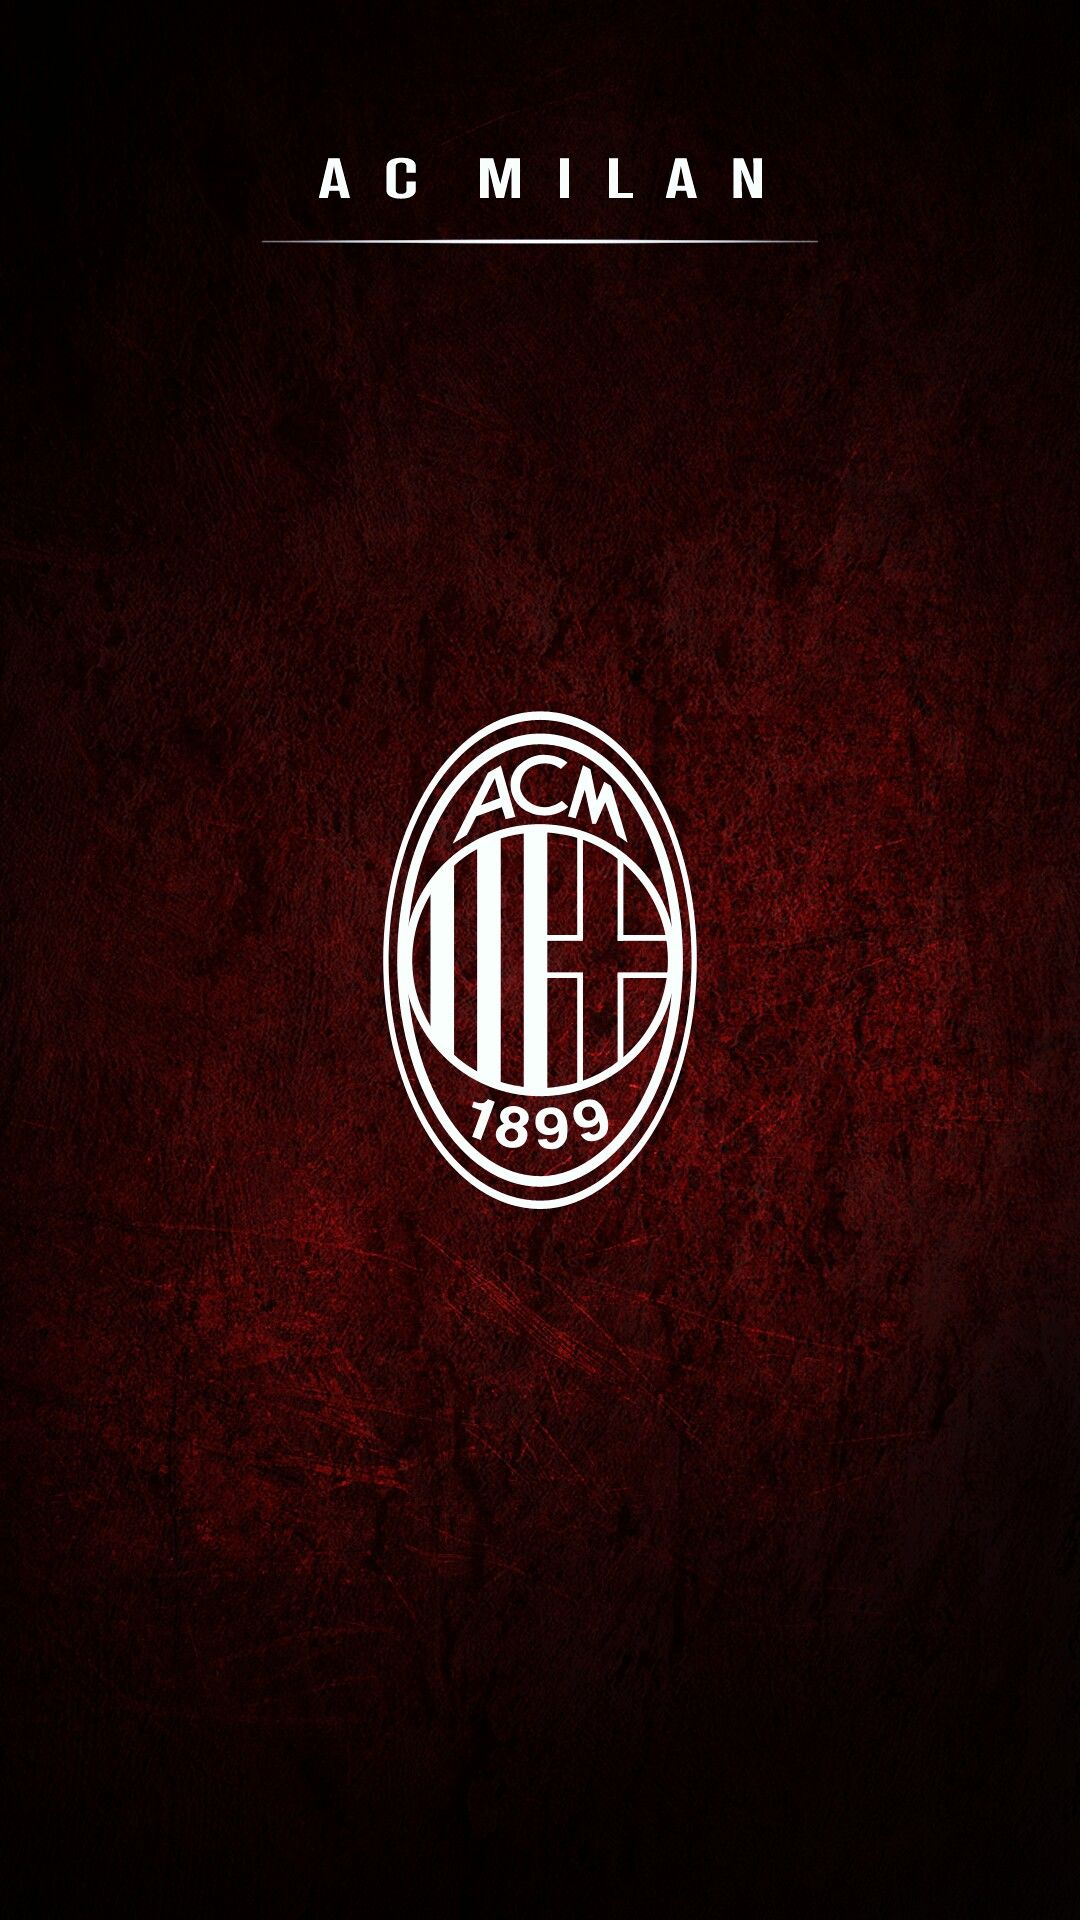 ac milan wallpaper rossoneri milan wallpaper milan